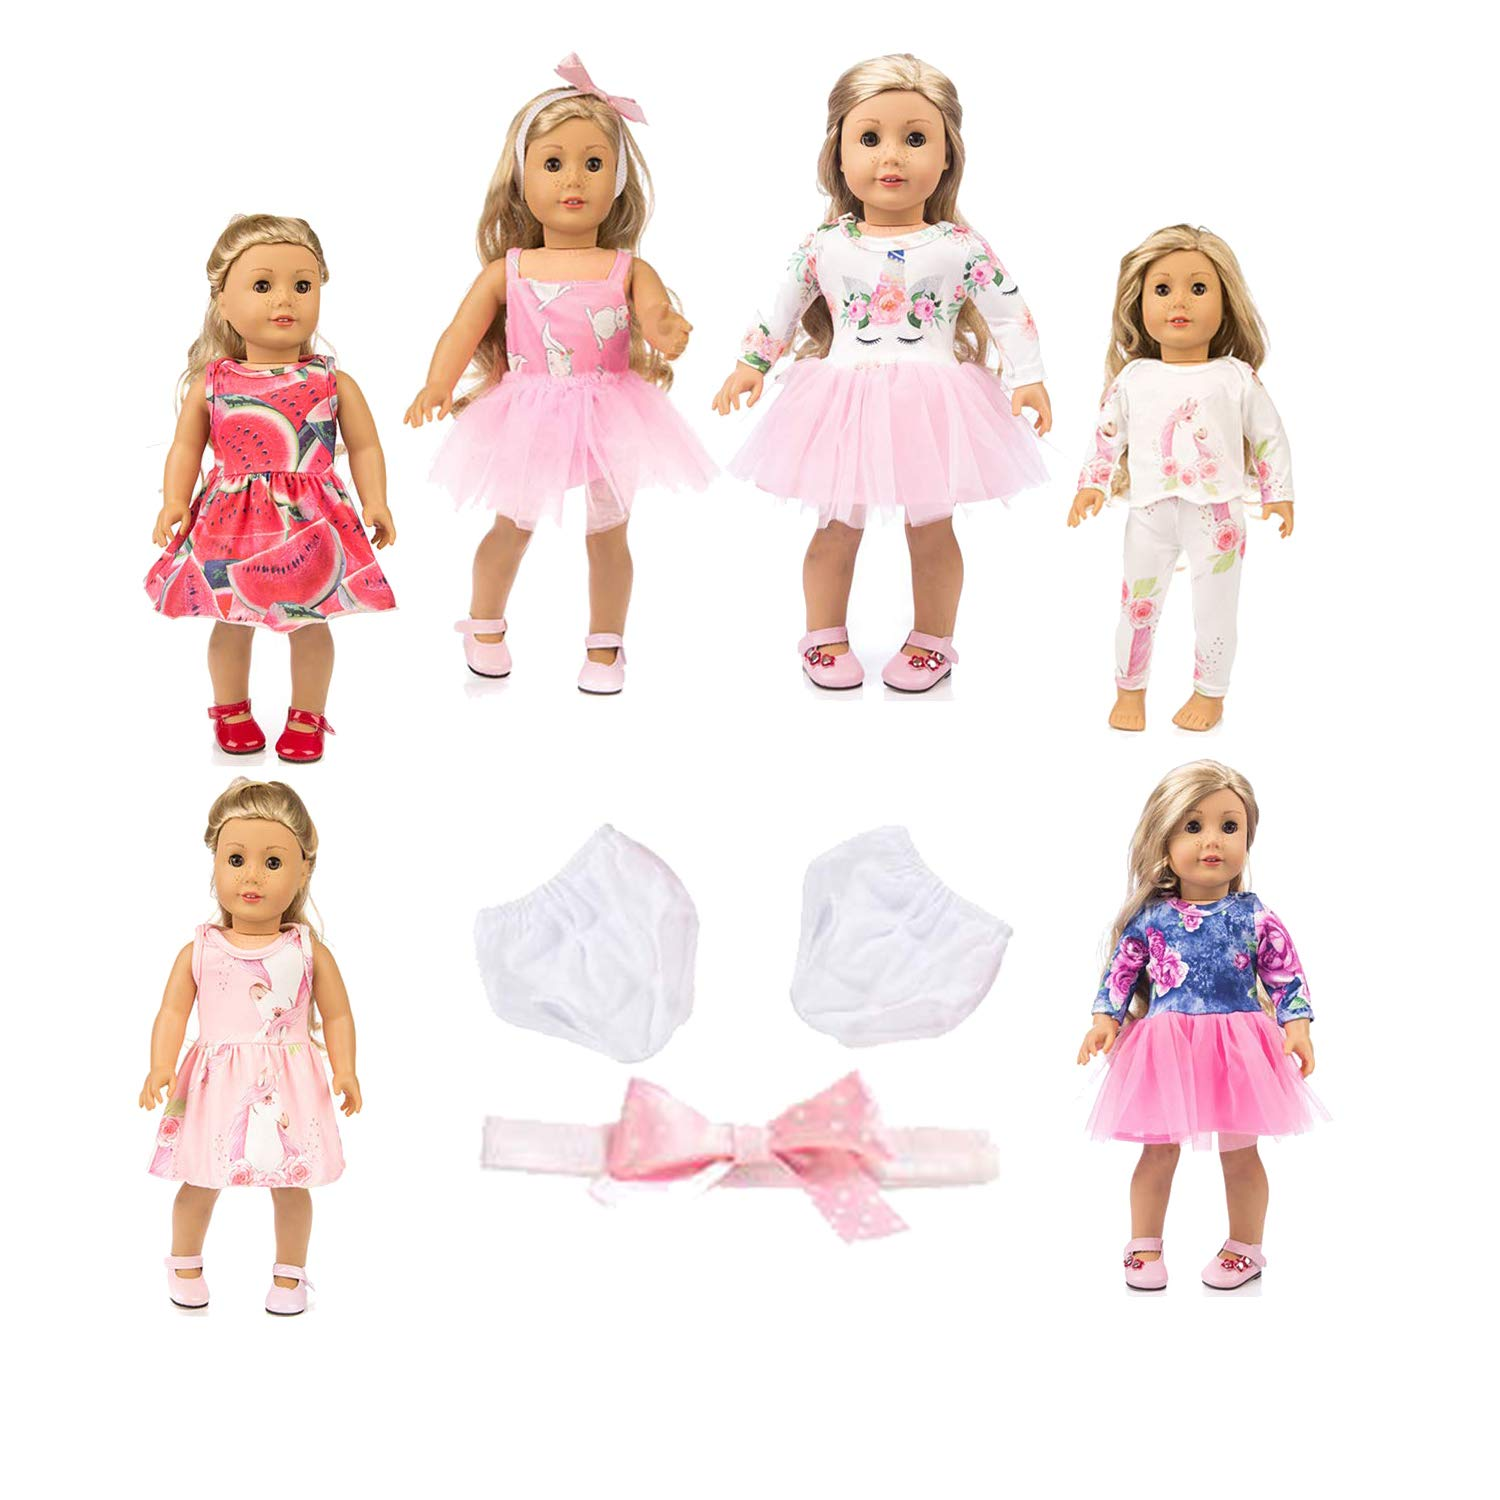 axxxt 11PC American girsl Doll Unicorn Doll American girsl Unicorn Doll Accessories Outfits Fits 18' Unicorn Doll Clothes American girsl Unicorn Doll Clothes 18 inch American girsl Doll Unicorn